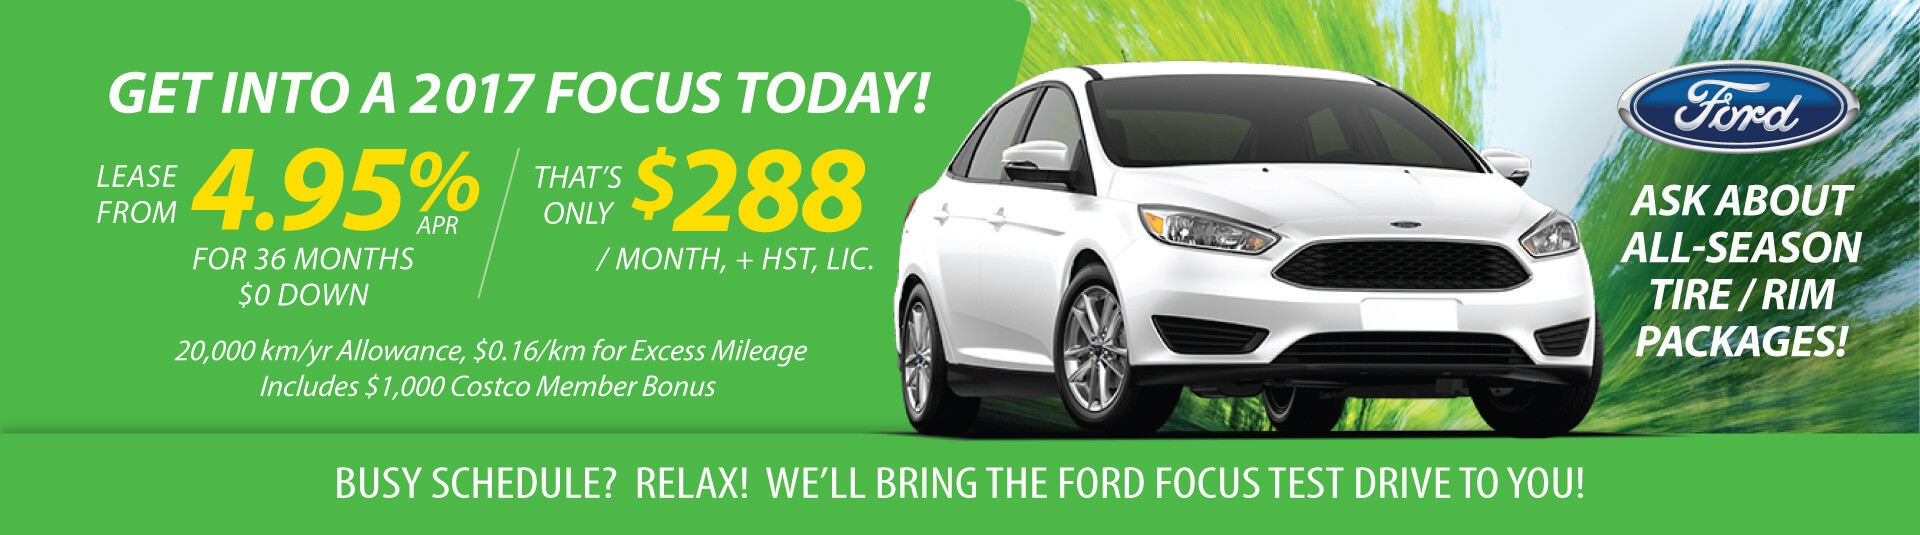 Lease Deal on Ford Focus